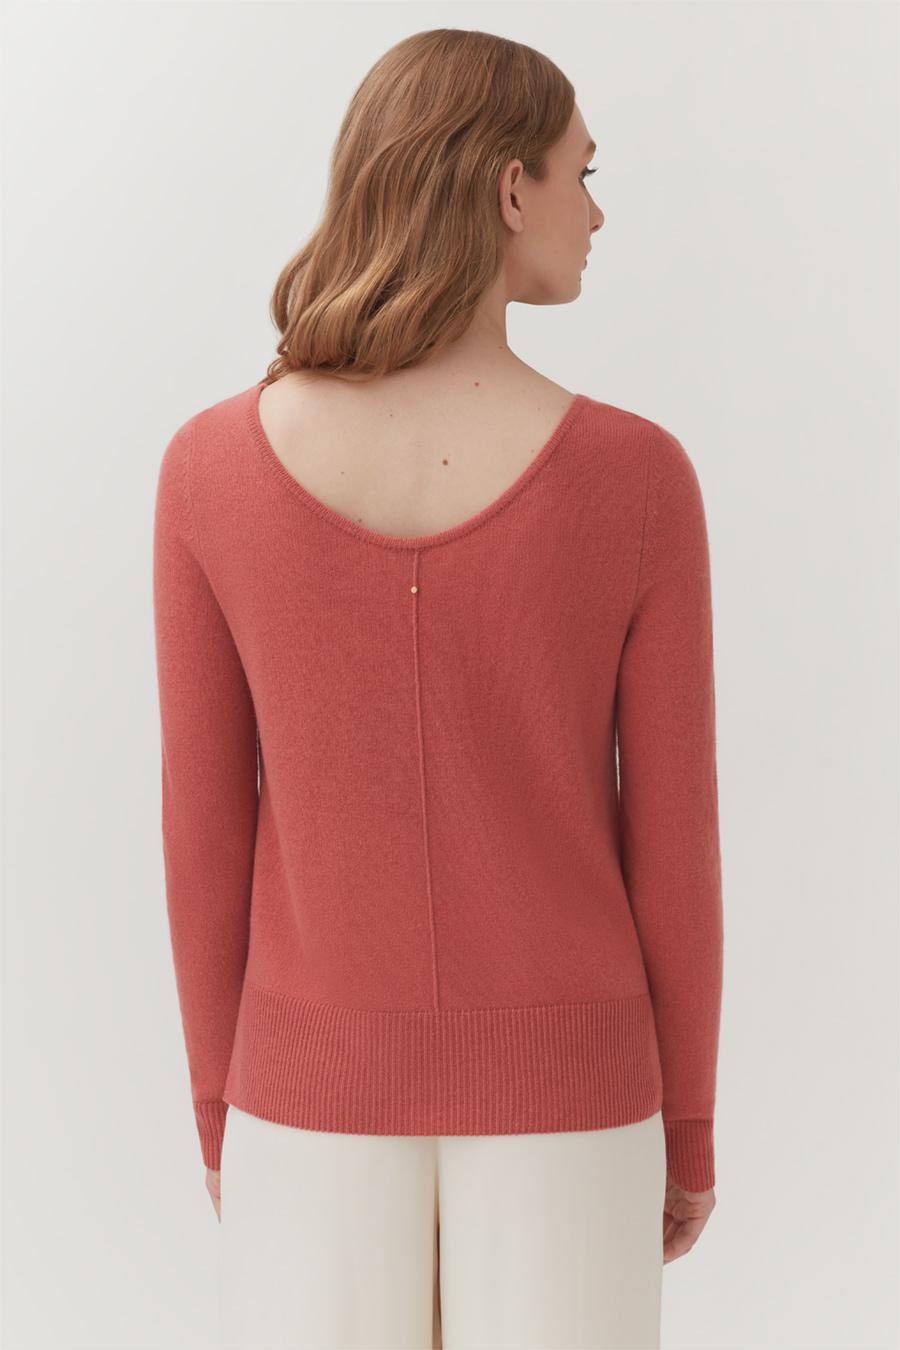 Women's Scoop Neck Sweater in Passion Fruit | Size: 2